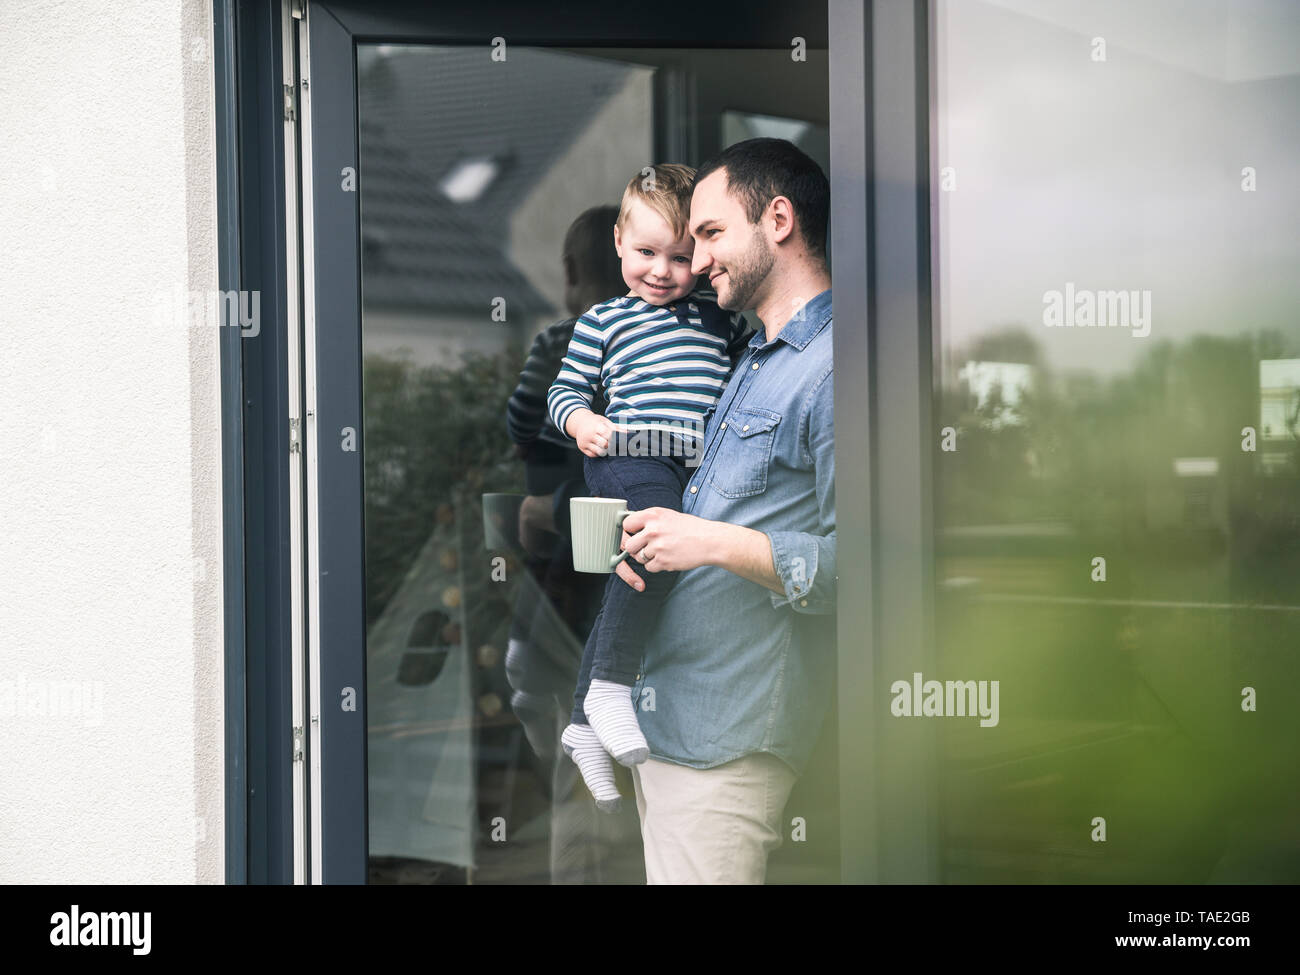 Father with cup of coffee carrying son at terrace door at home - Stock Image